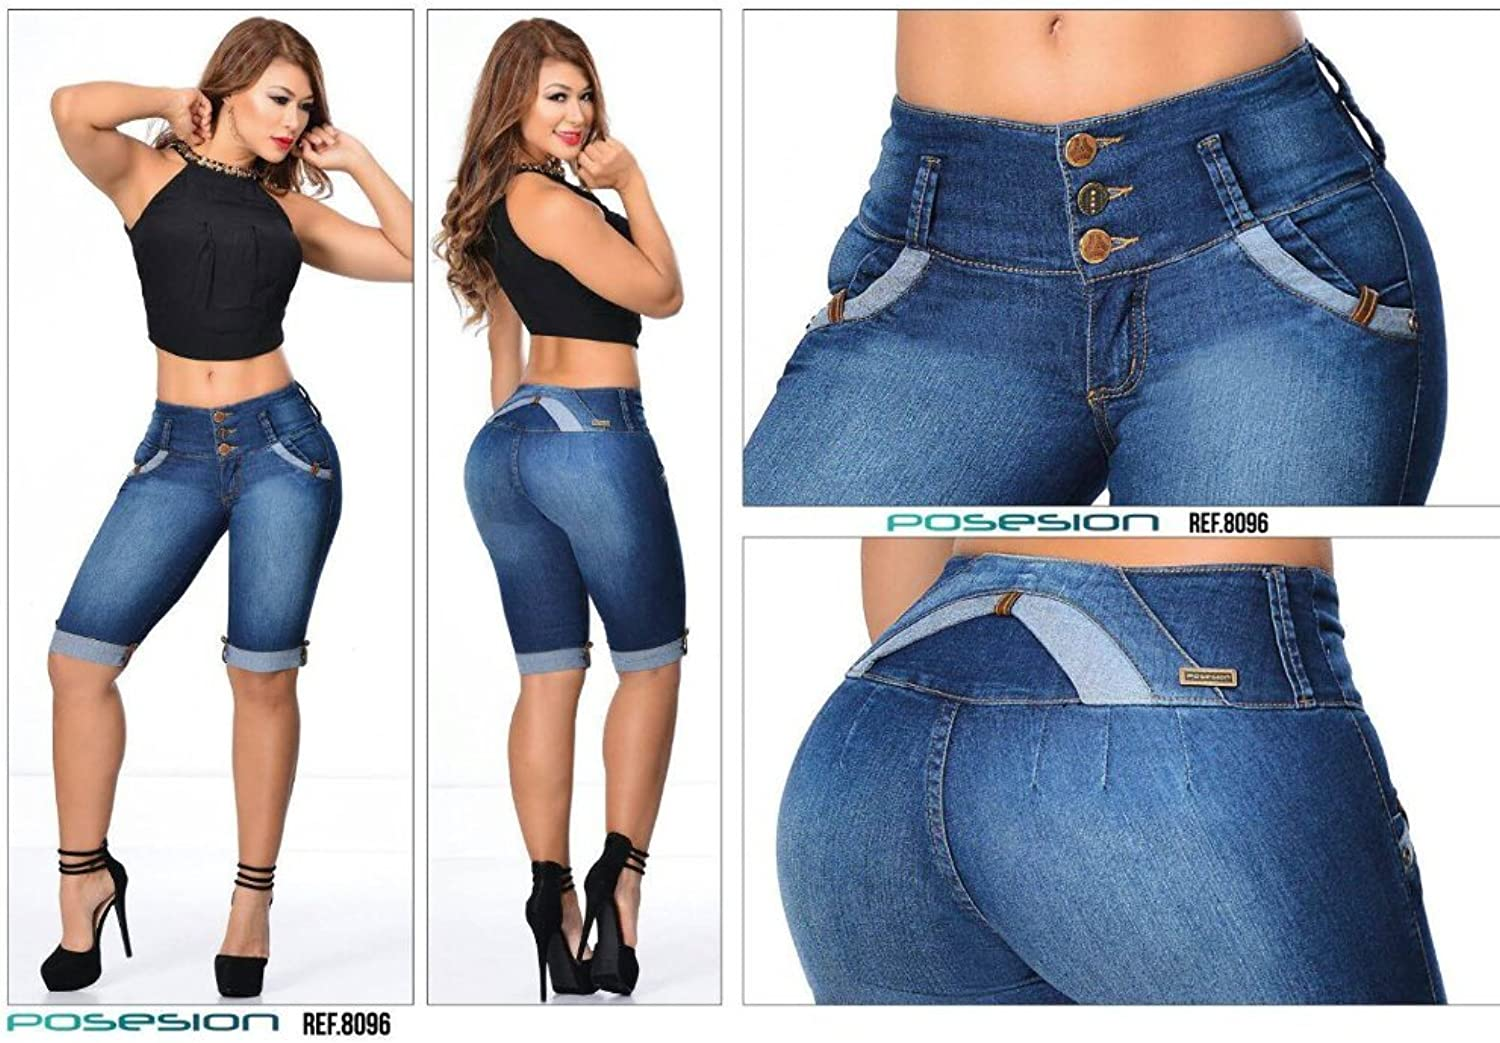 100% Authentic Colombian Push Up 10195 Jean by Gales